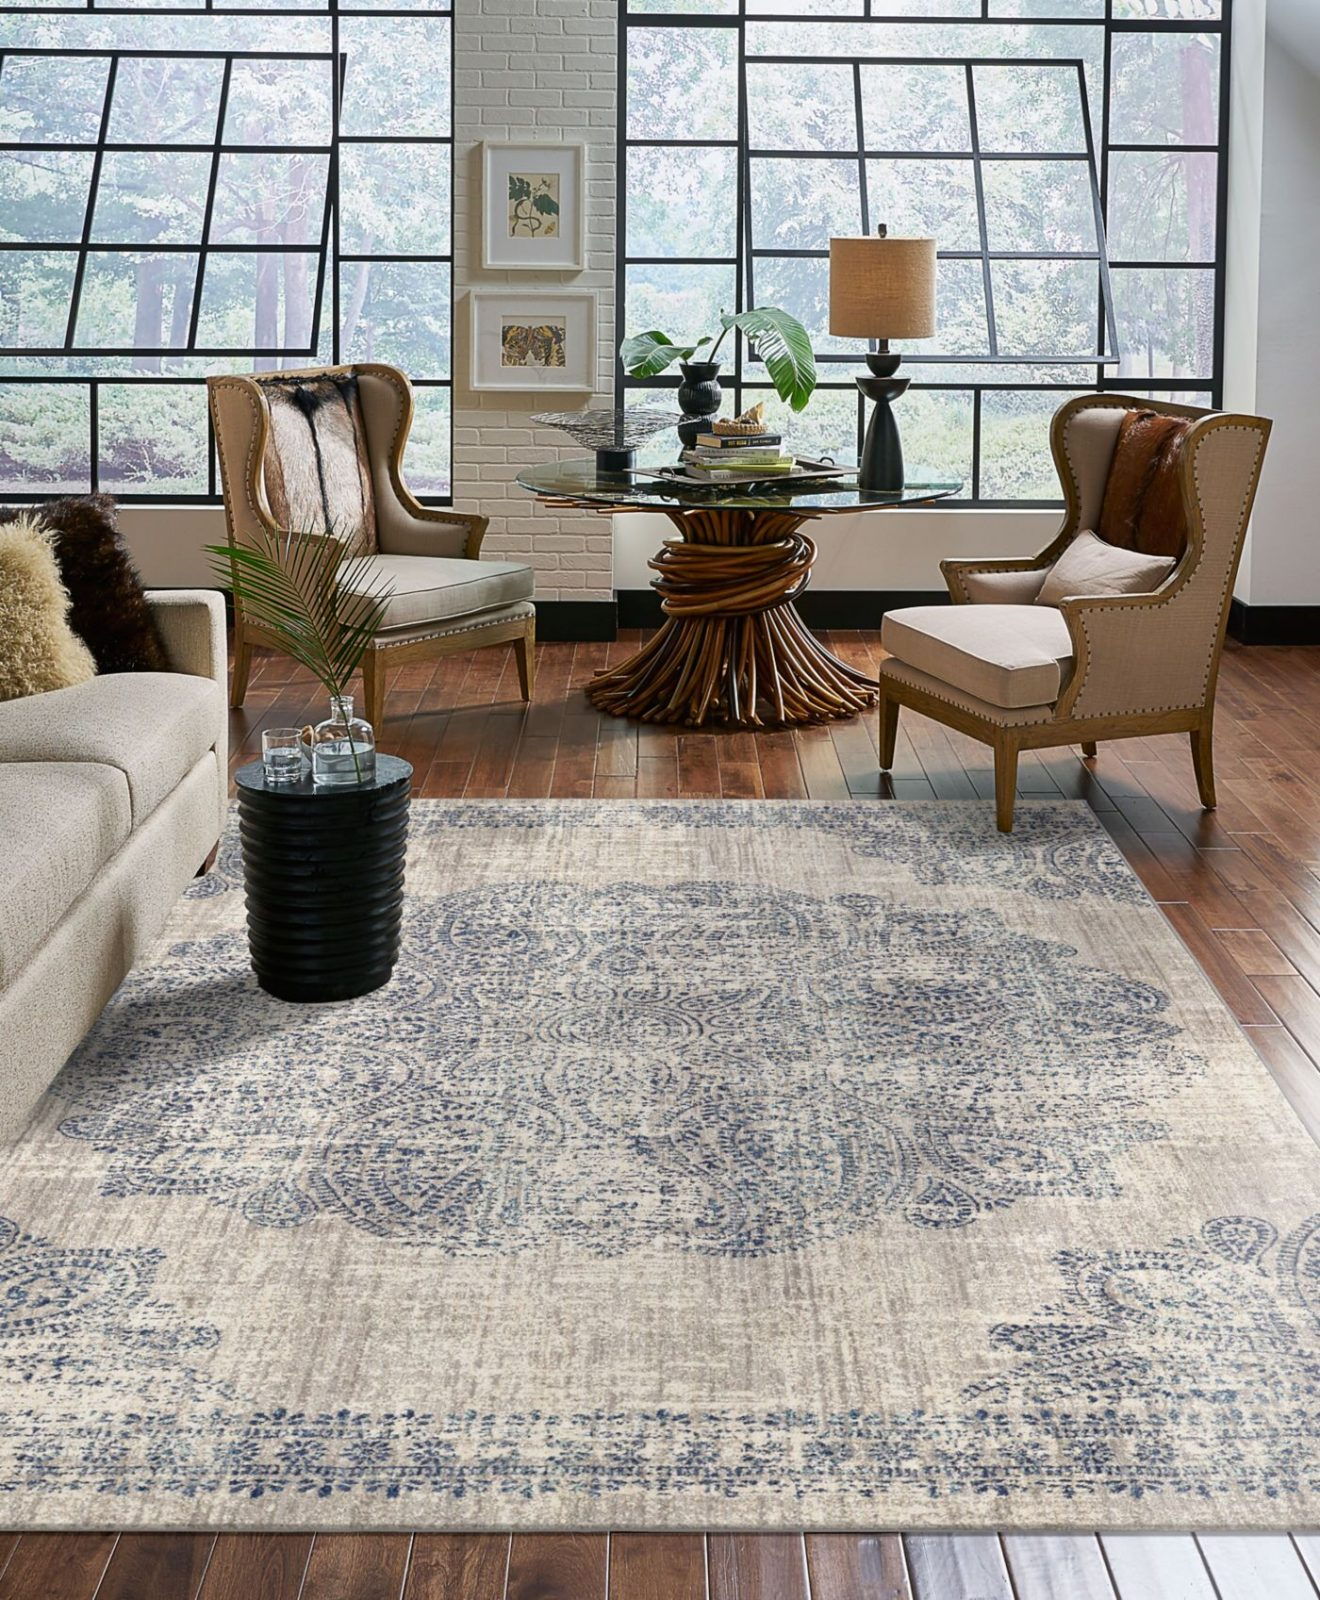 Highest quality indoor and outdoor rugs from trusted brands | Baycarpet